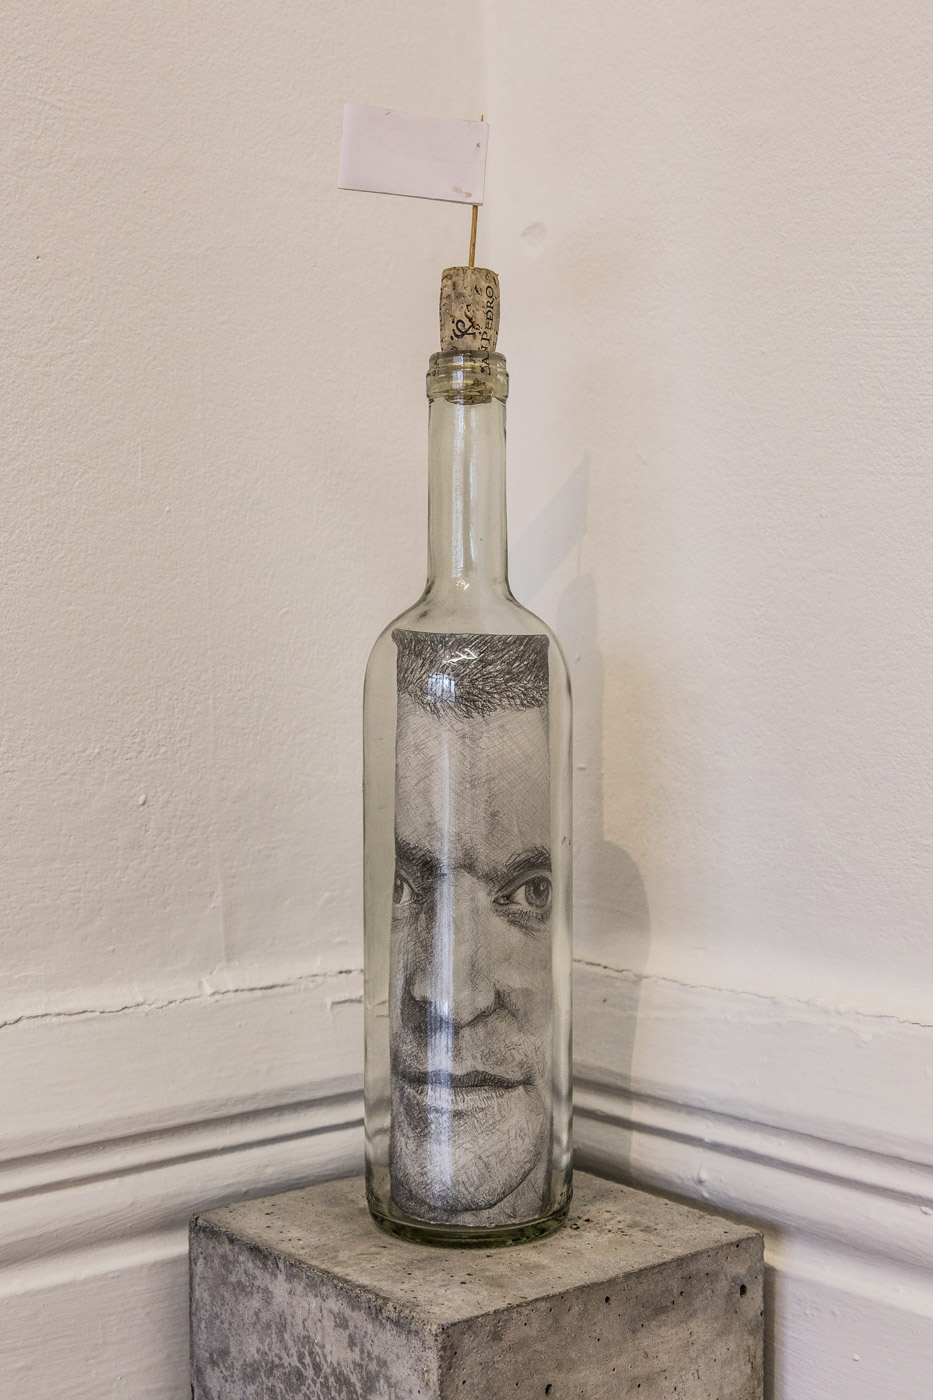 Bottled, drawing, 2014   wine bottle, cork, flag, drawing on paper, concrete block